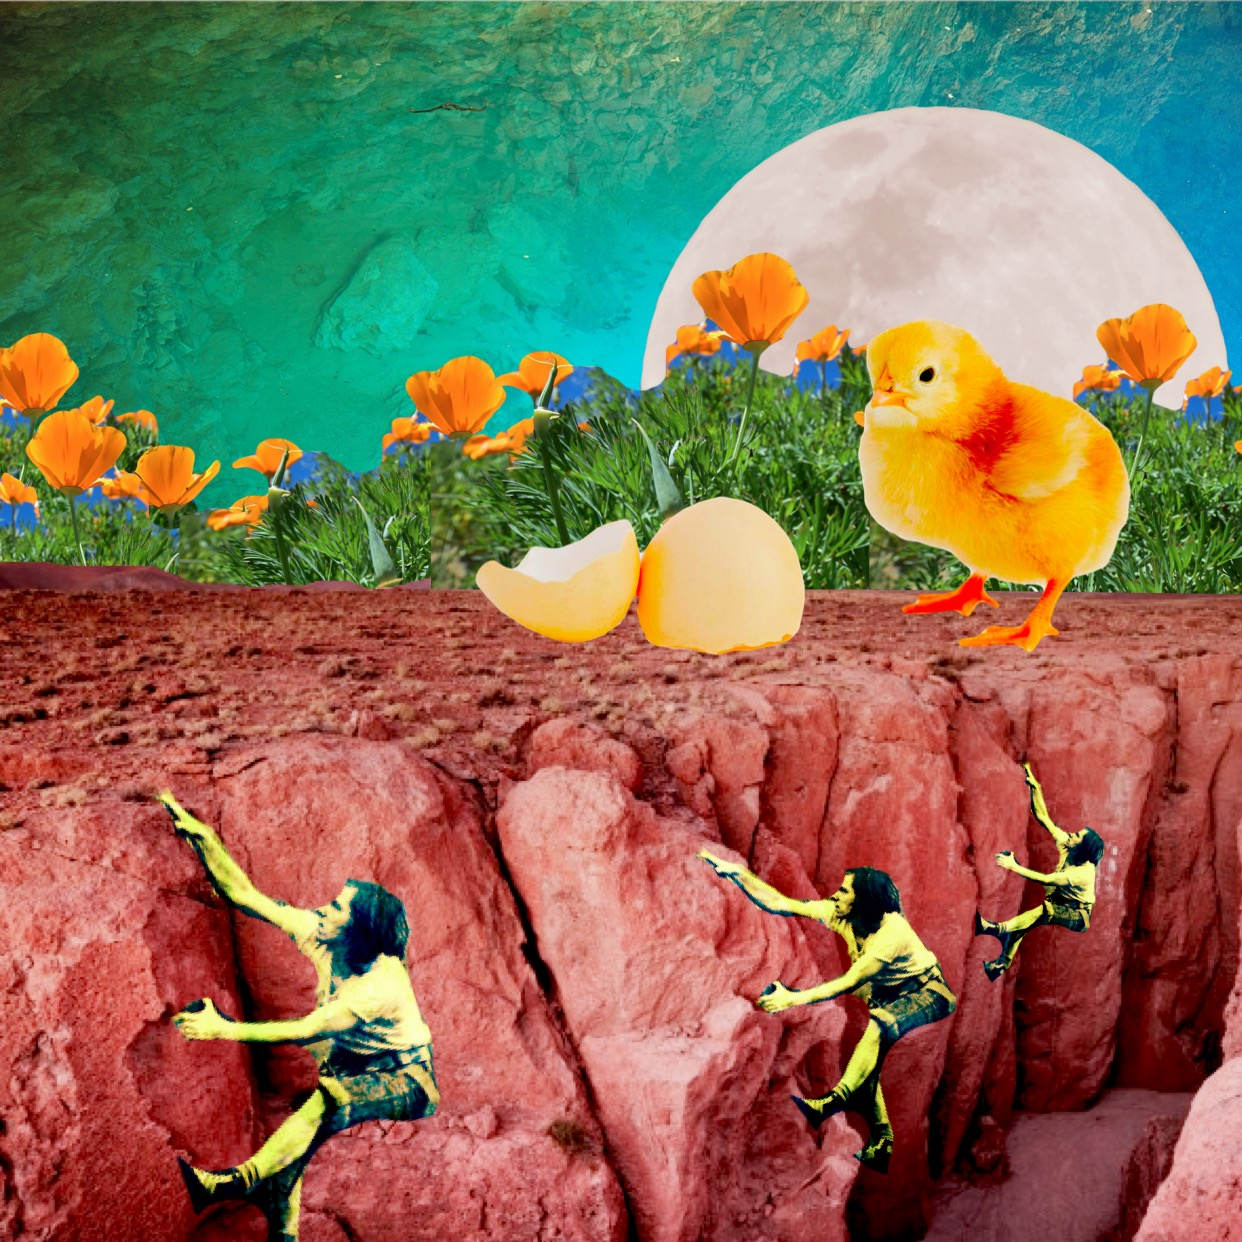 Hatched, art collage by Carrie Becker